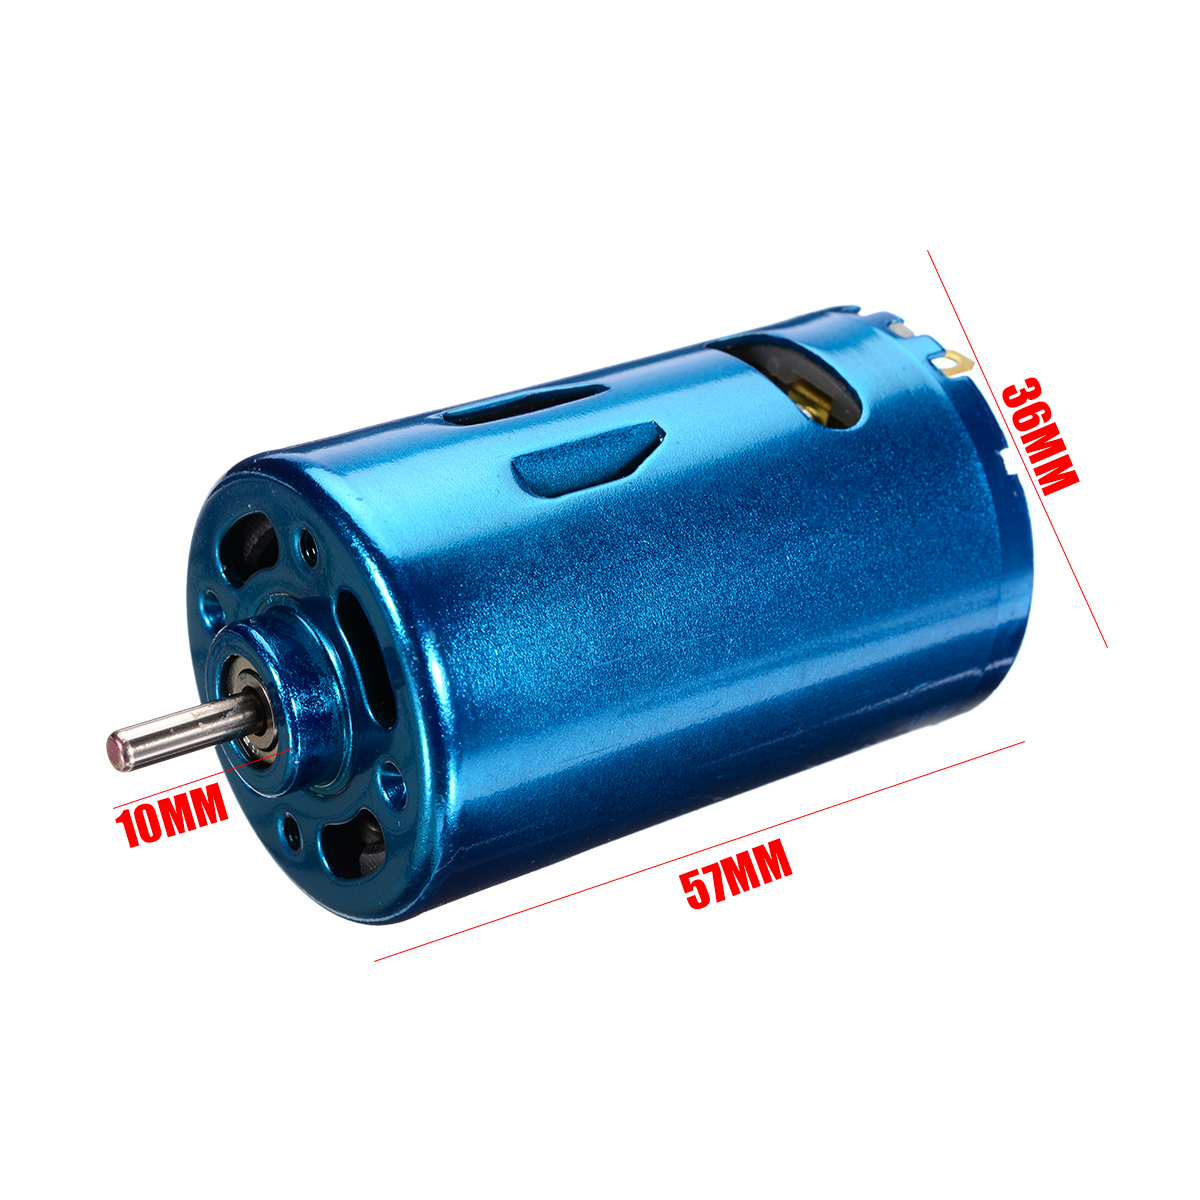 High Speed DC <font><b>Motor</b></font> RS-<font><b>550</b></font> <font><b>Motor</b></font> Large Torque RC Car Boat Model <font><b>12V</b></font> 24V 30000RPM For <font><b>Motor</b></font> Parts Accessories image